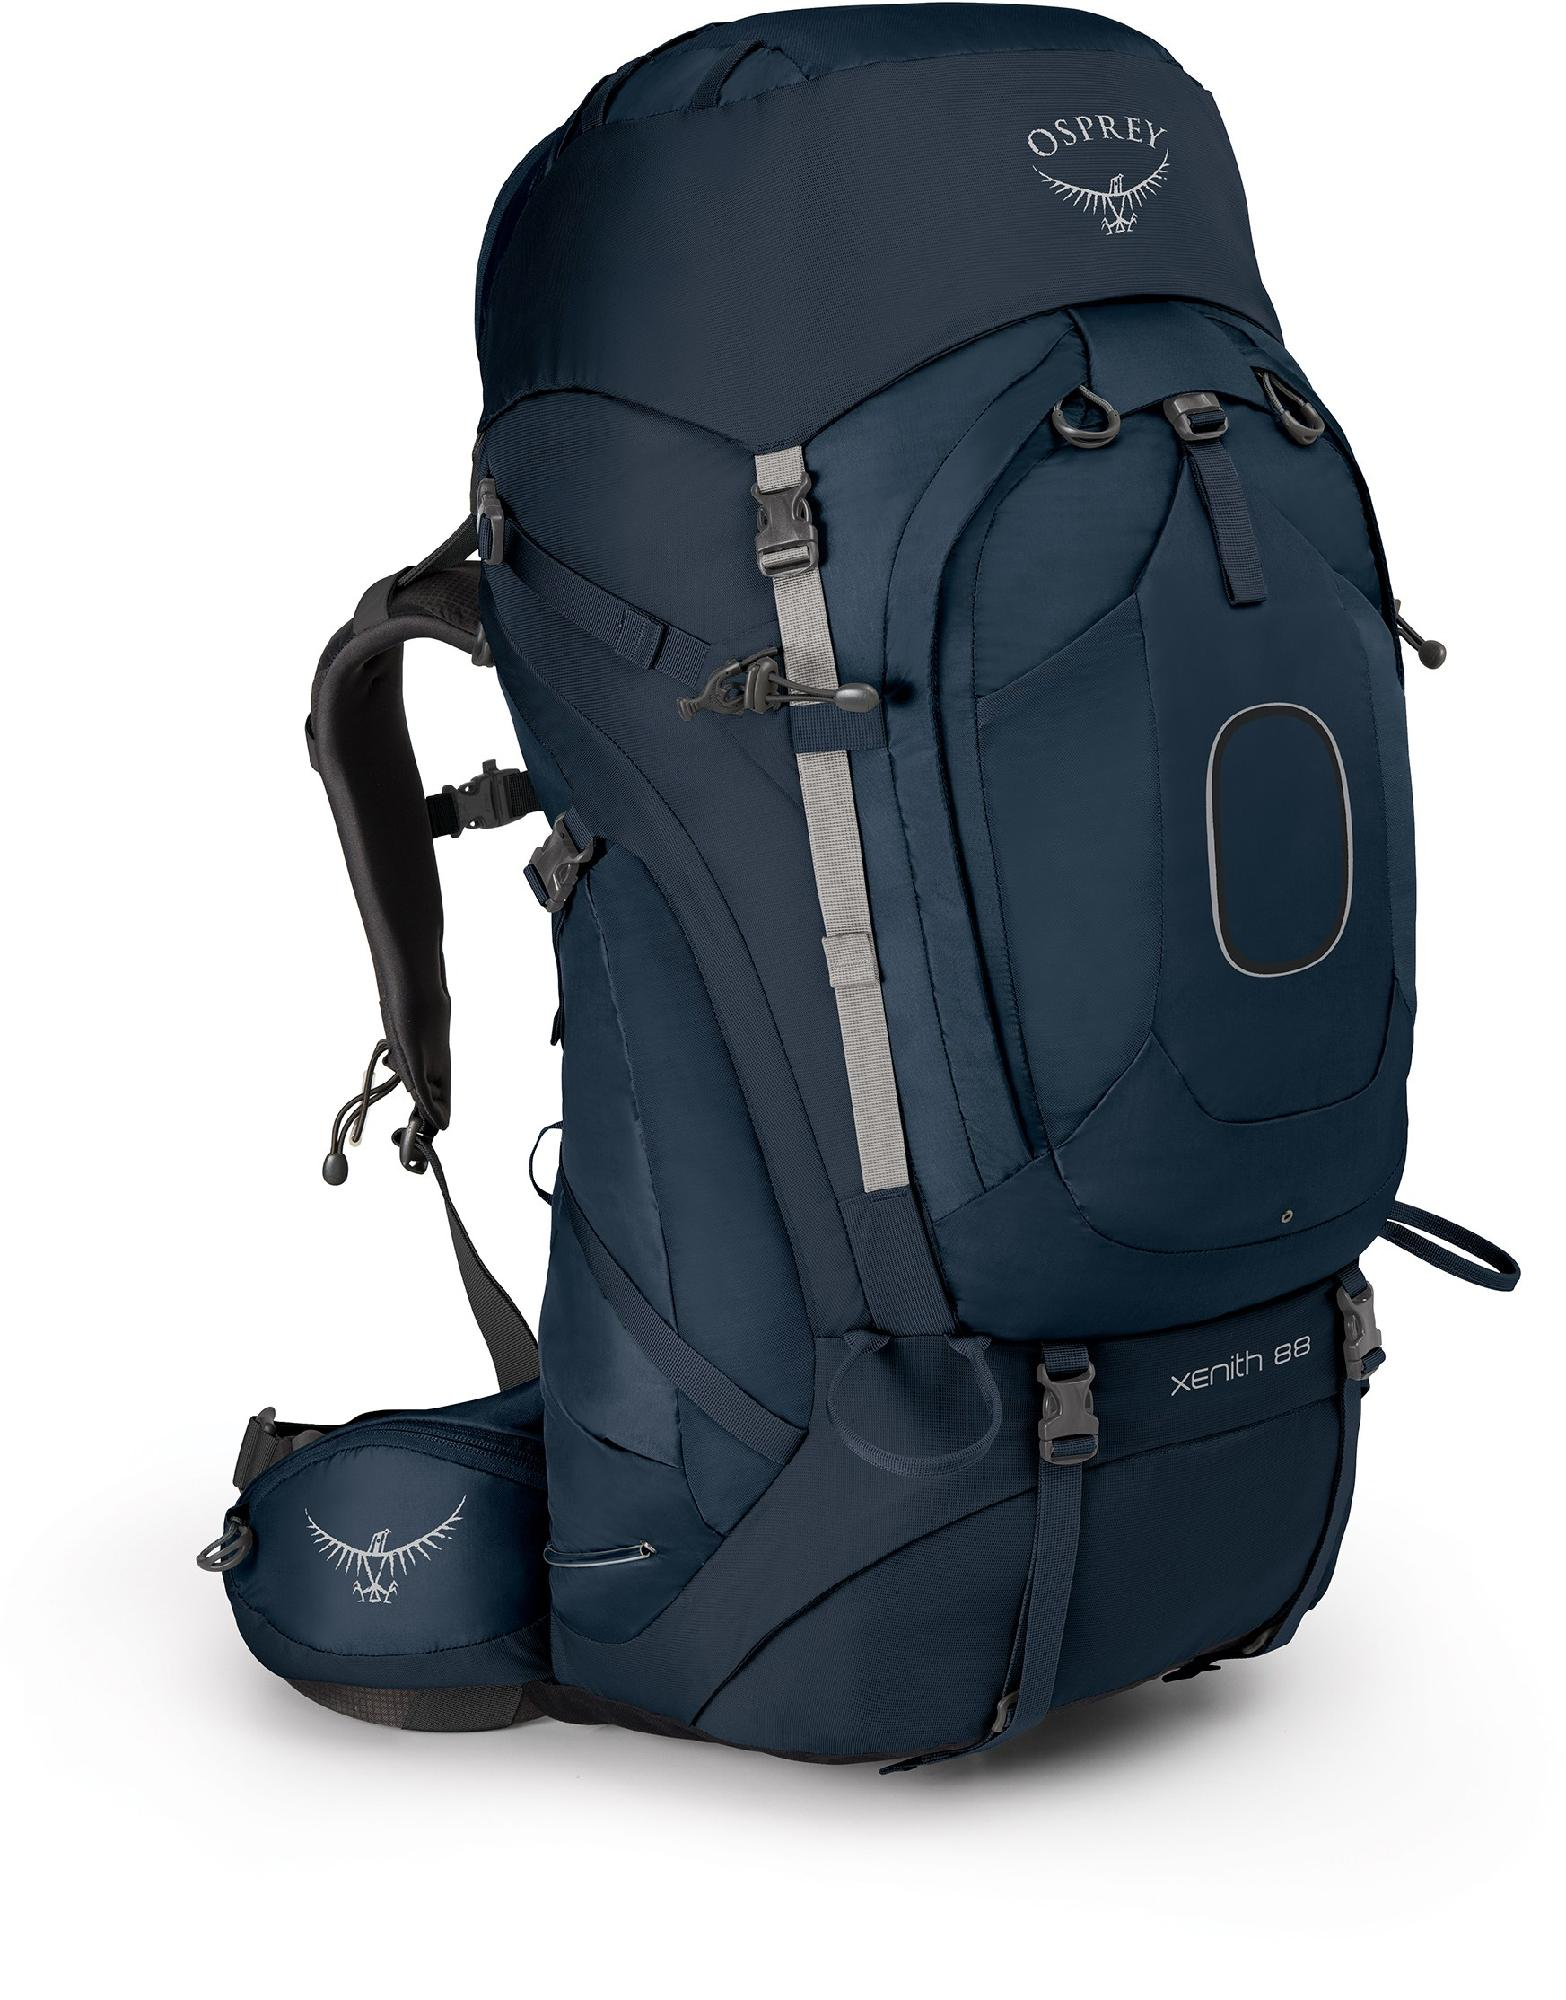 Osprey Xenith 88 Pack - Men's